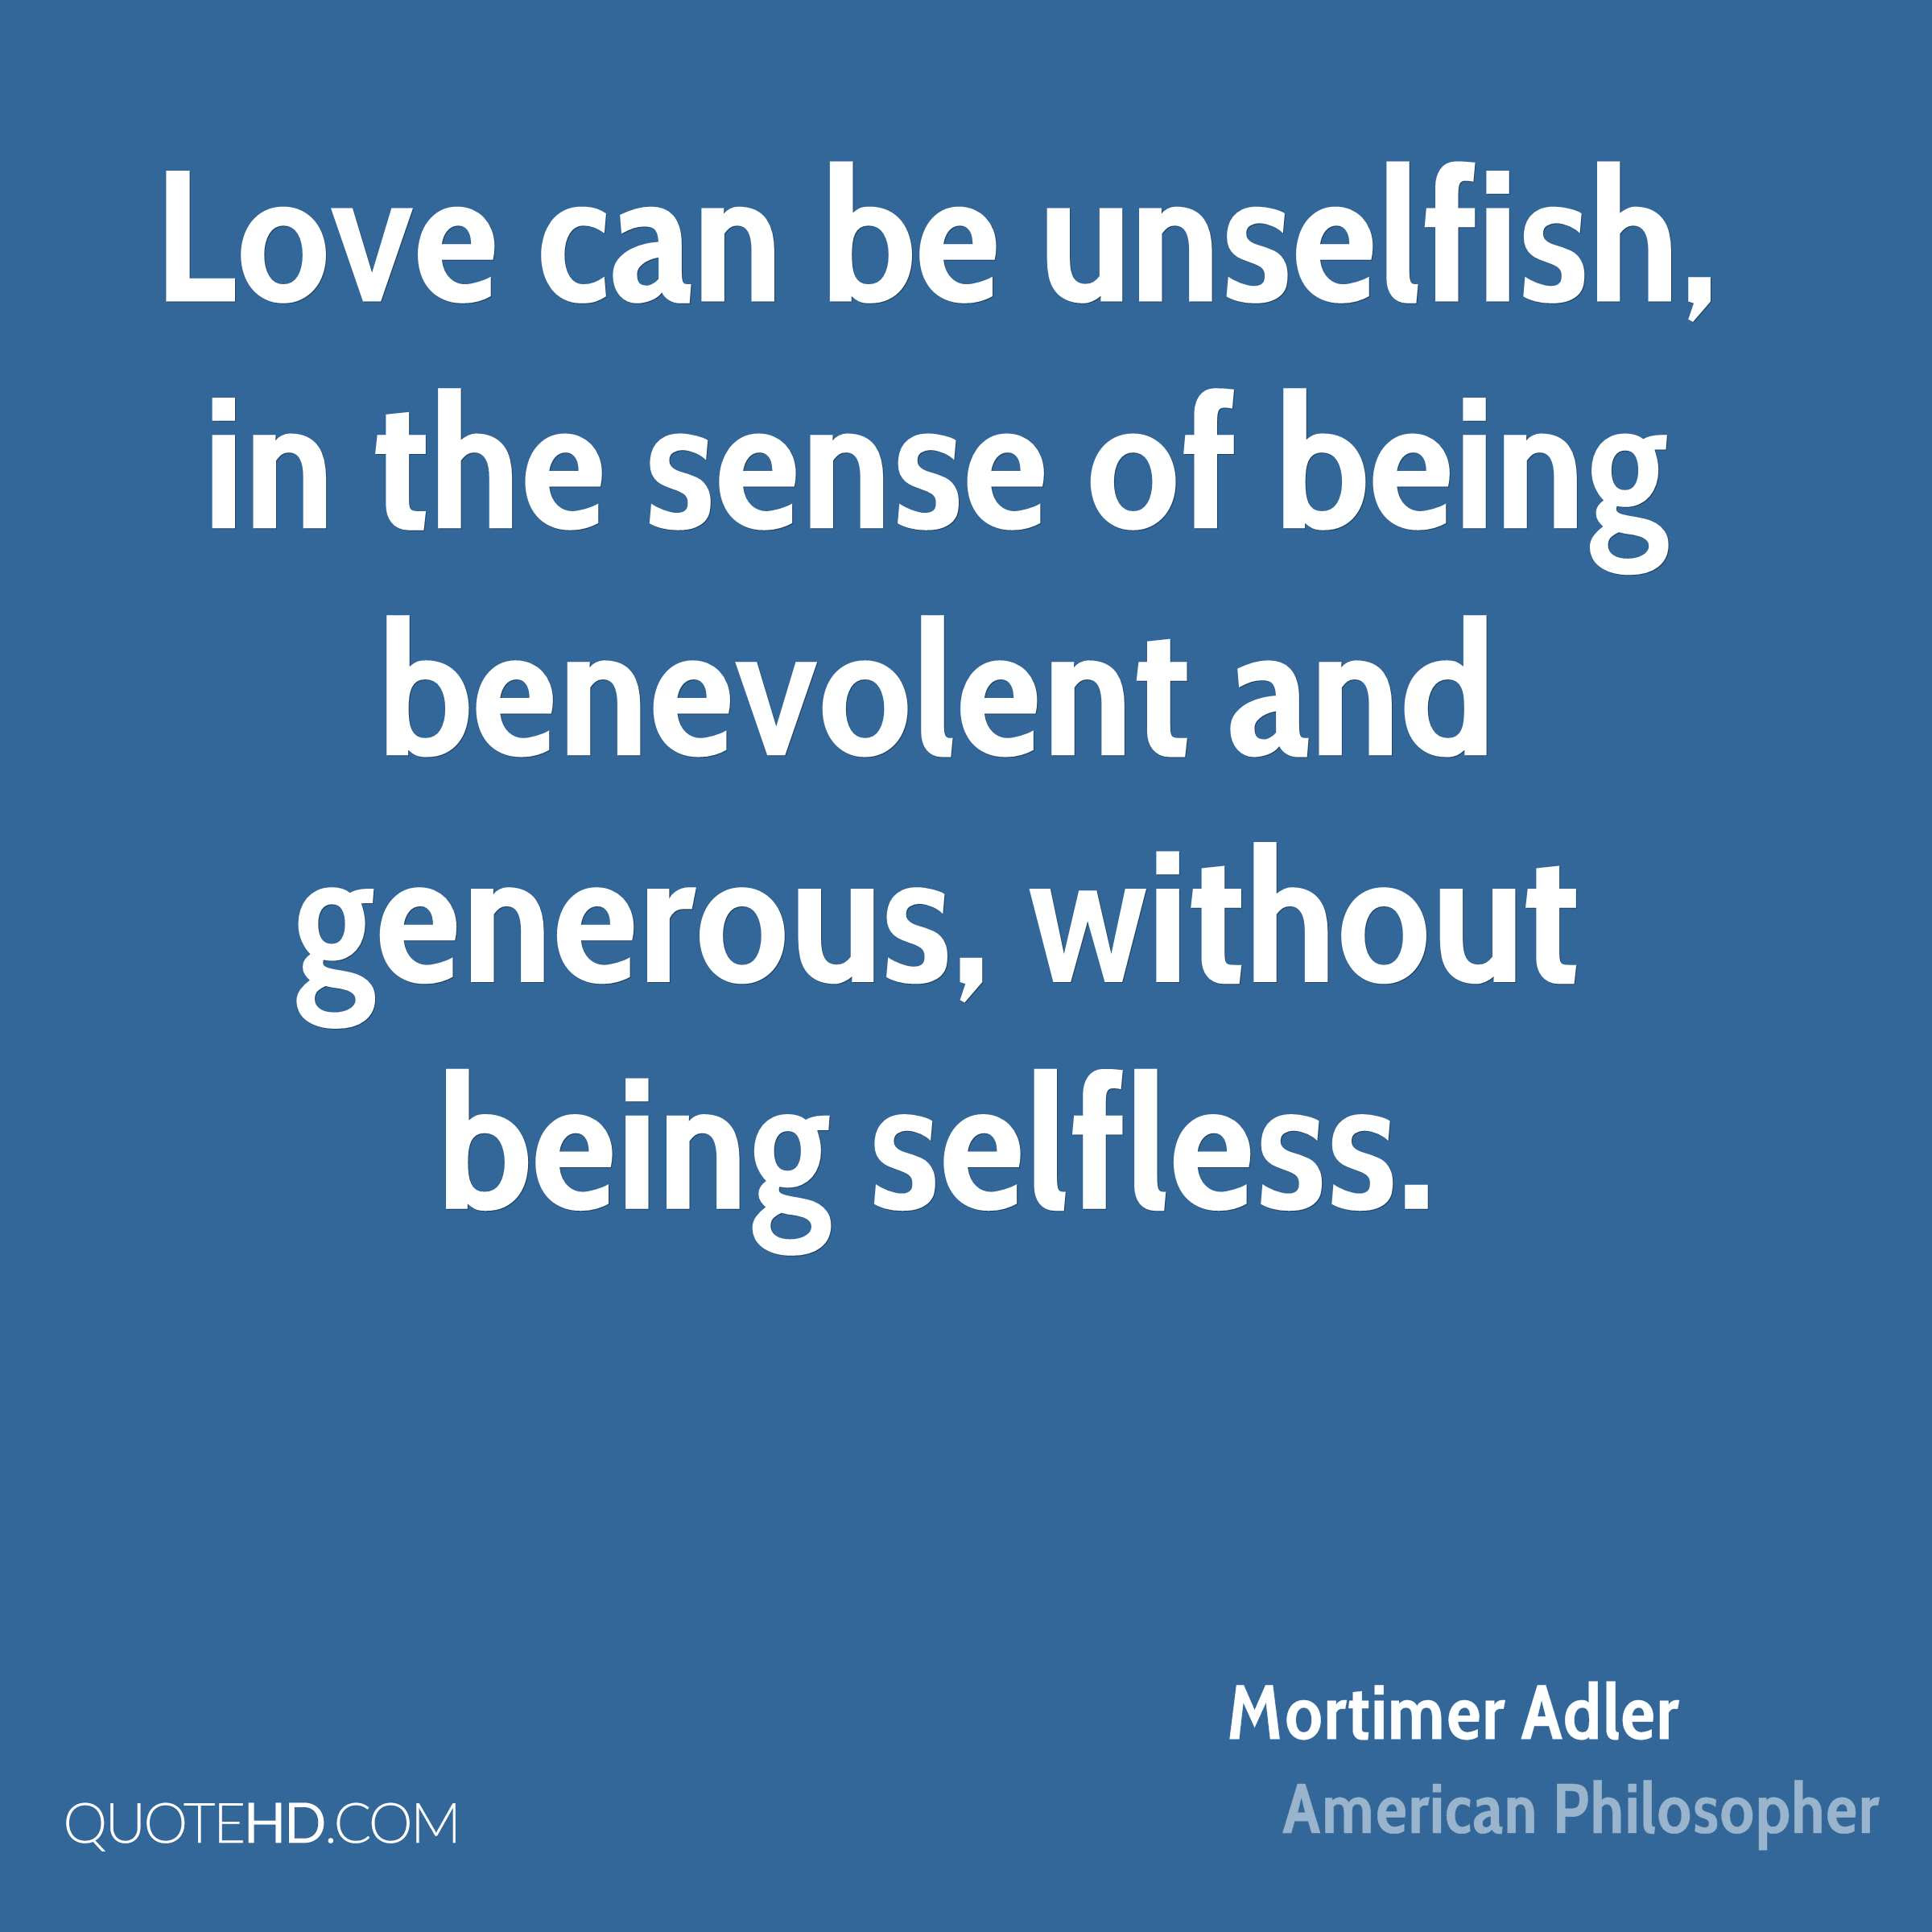 Mortimer Adler Quotes Quotehd